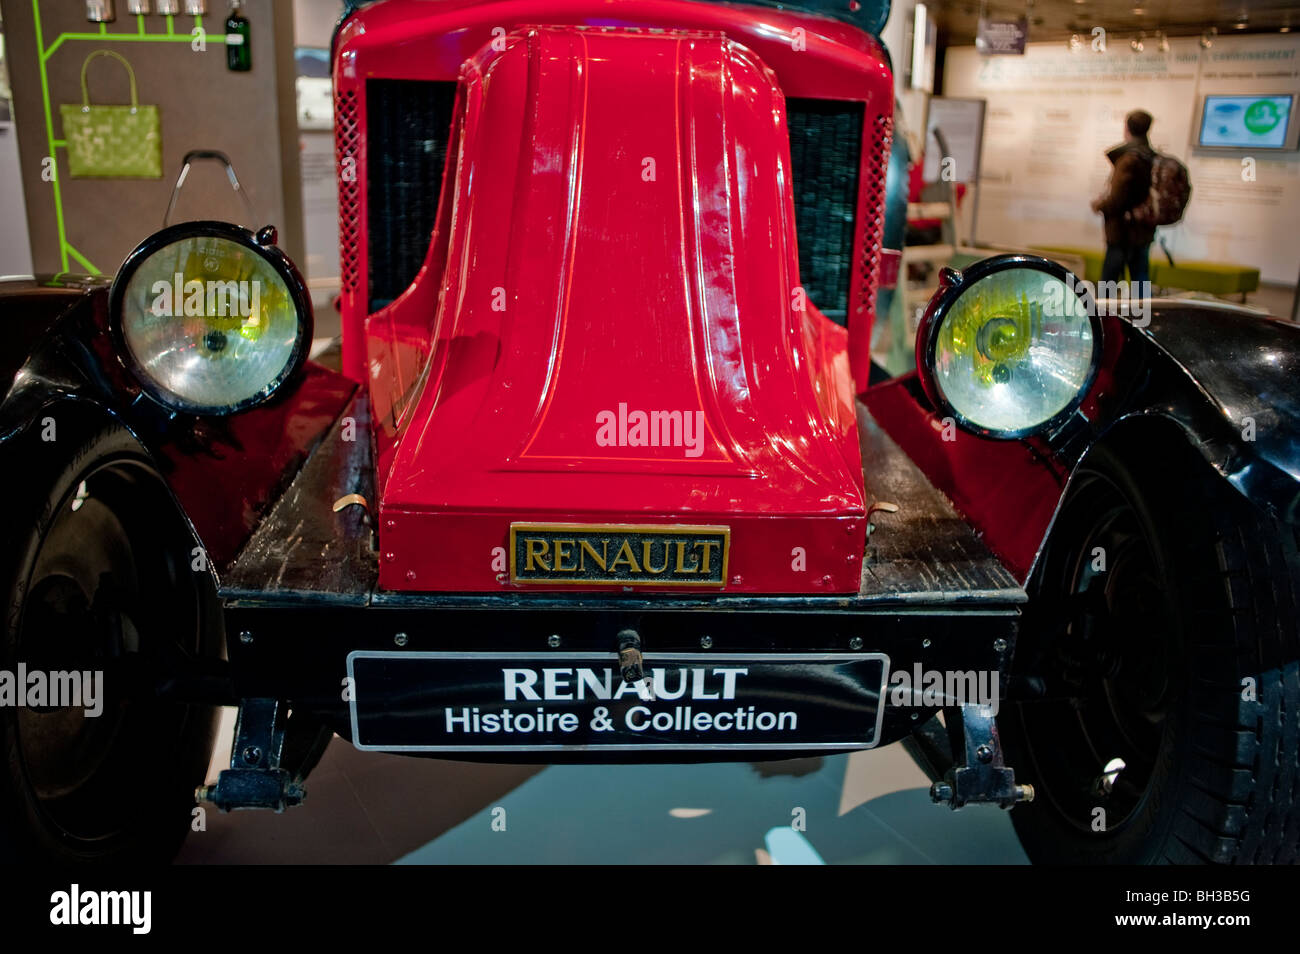 Car Renault Old Car Red Stock Photos & Car Renault Old Car Red Stock ...